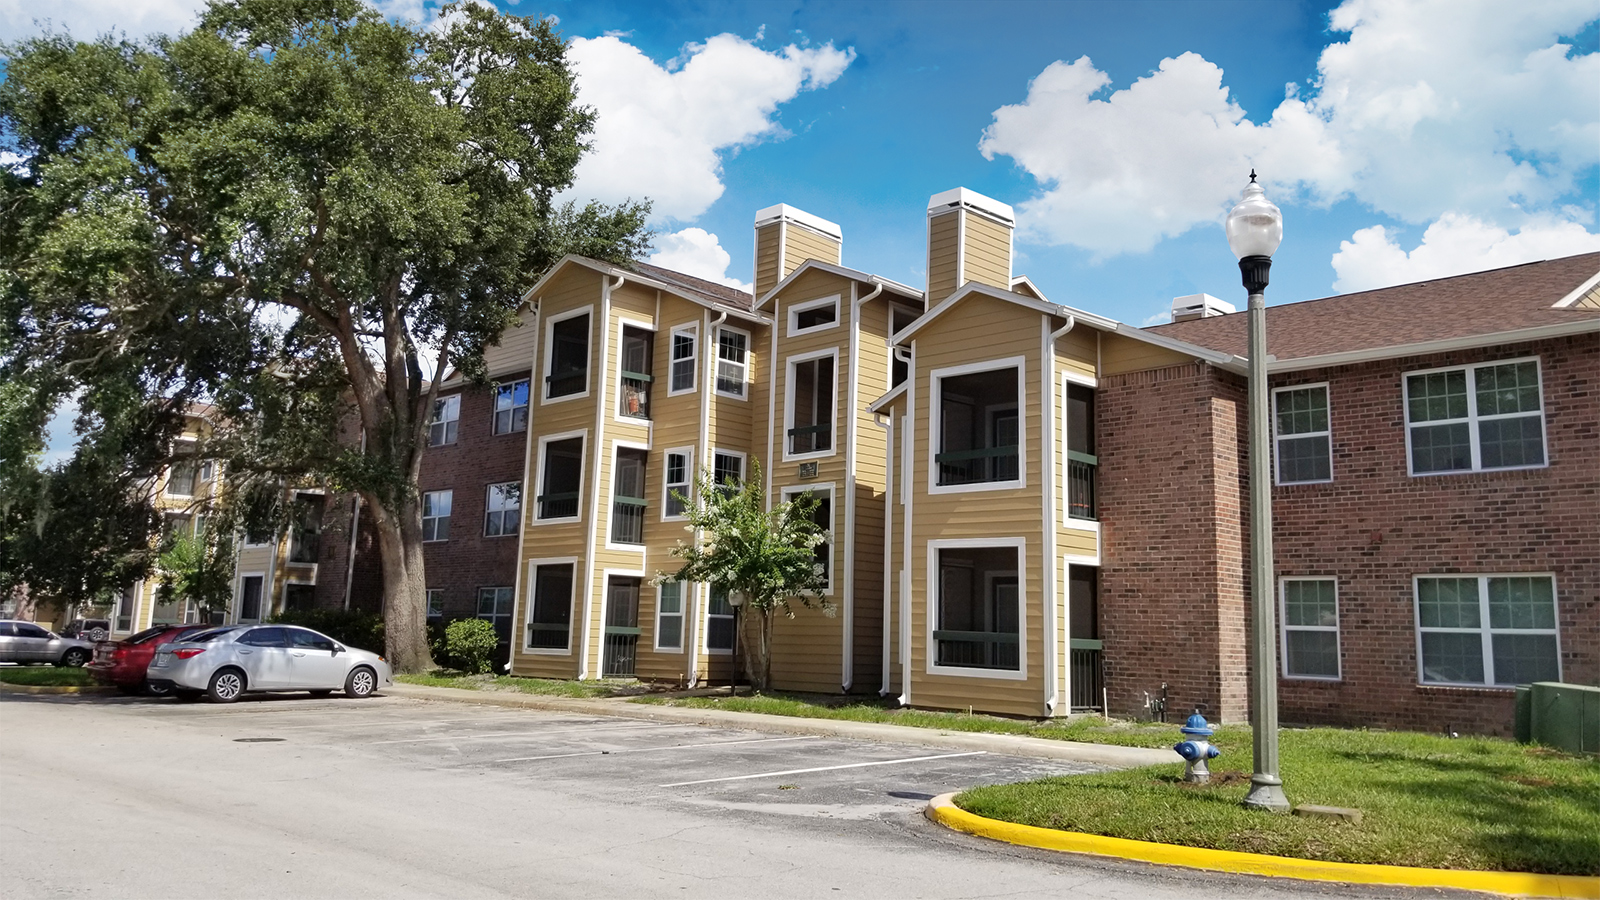 Your new home is waiting at Regency Gardens! Whether you're a first-time home buyer or investor, you'll appreciate this spacious condo showcasing NEW A/C, NEW PAINT, and NEW CARPET. This sought-after community offers a plethora of amenities in close proximity to everything you need!